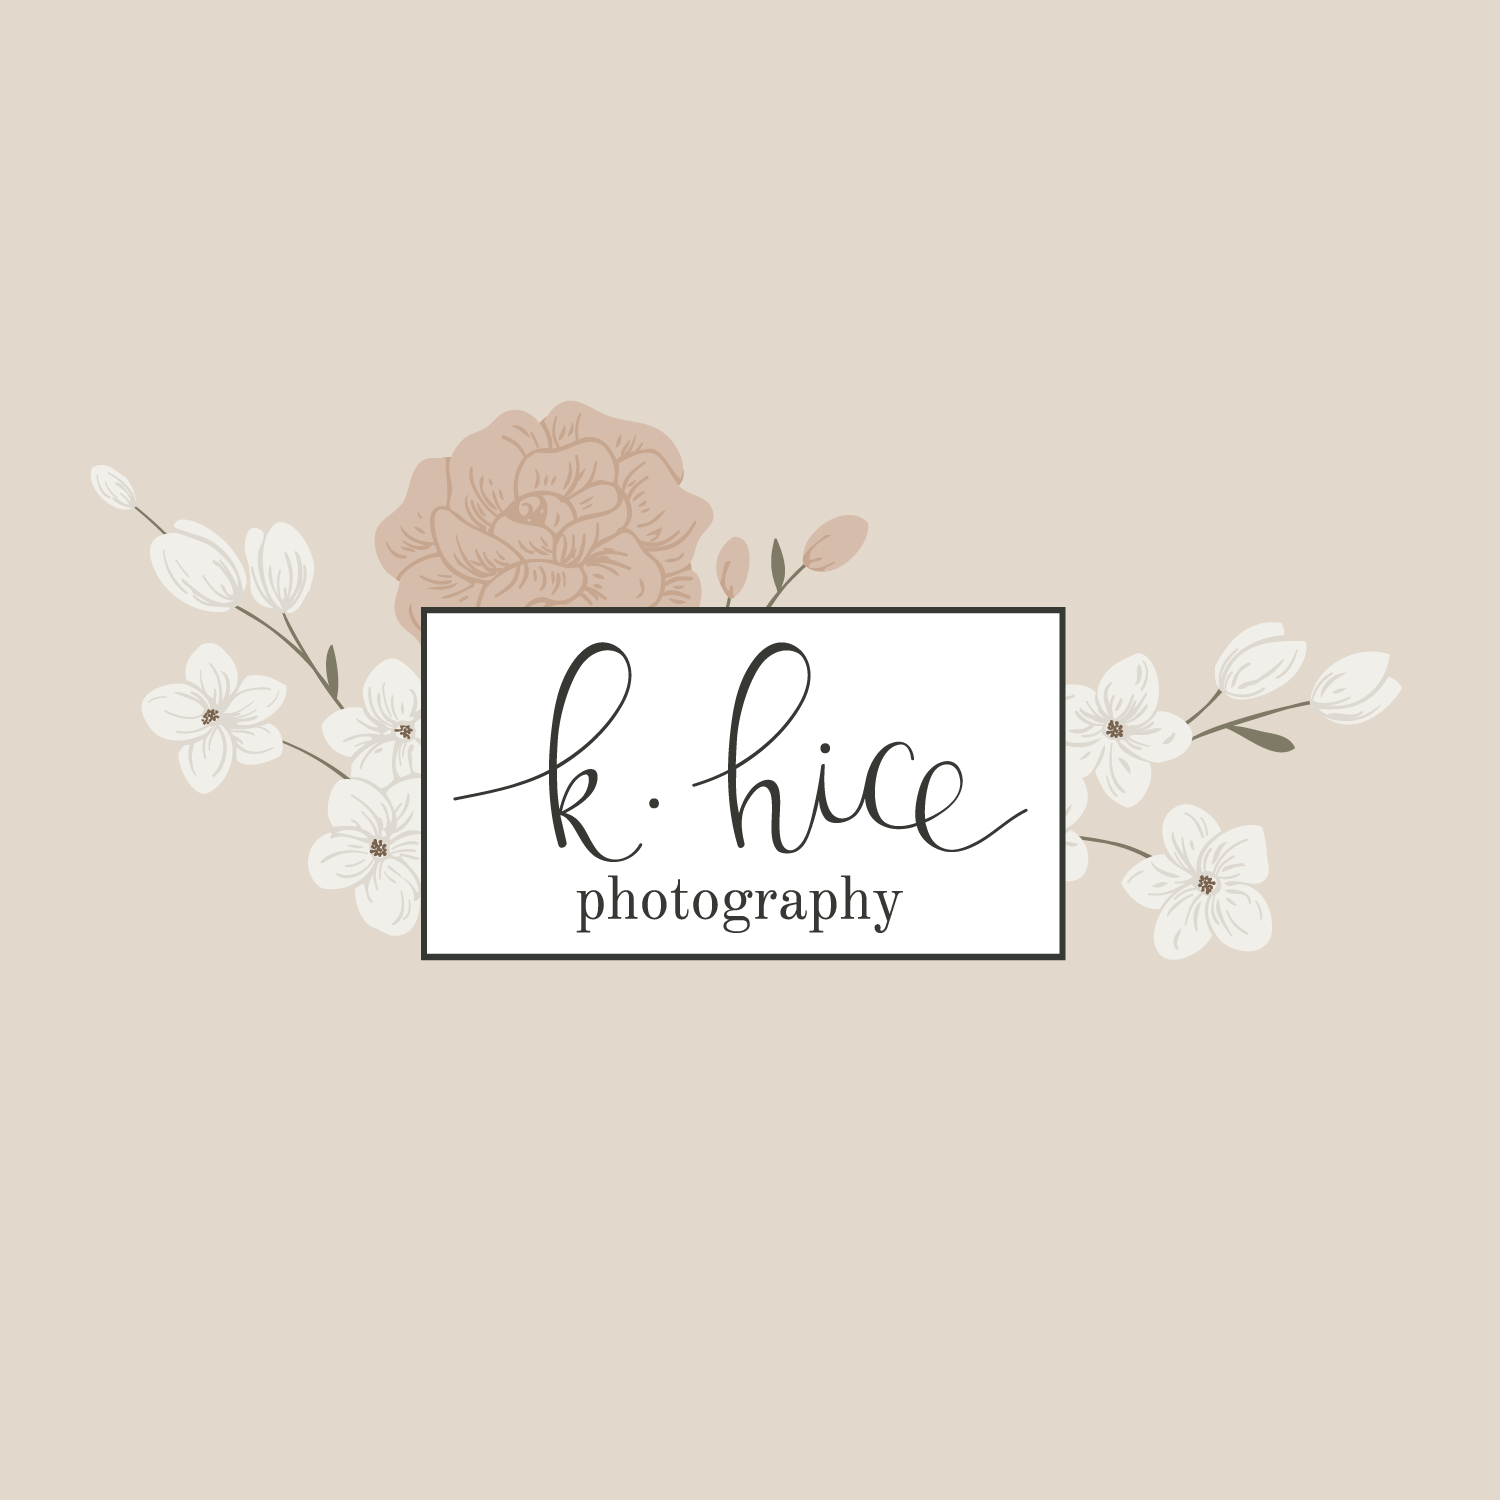 Social Sharing  9.pngK Hice Photography Logo & Branding by Bea & Bloom Creative Design Studio